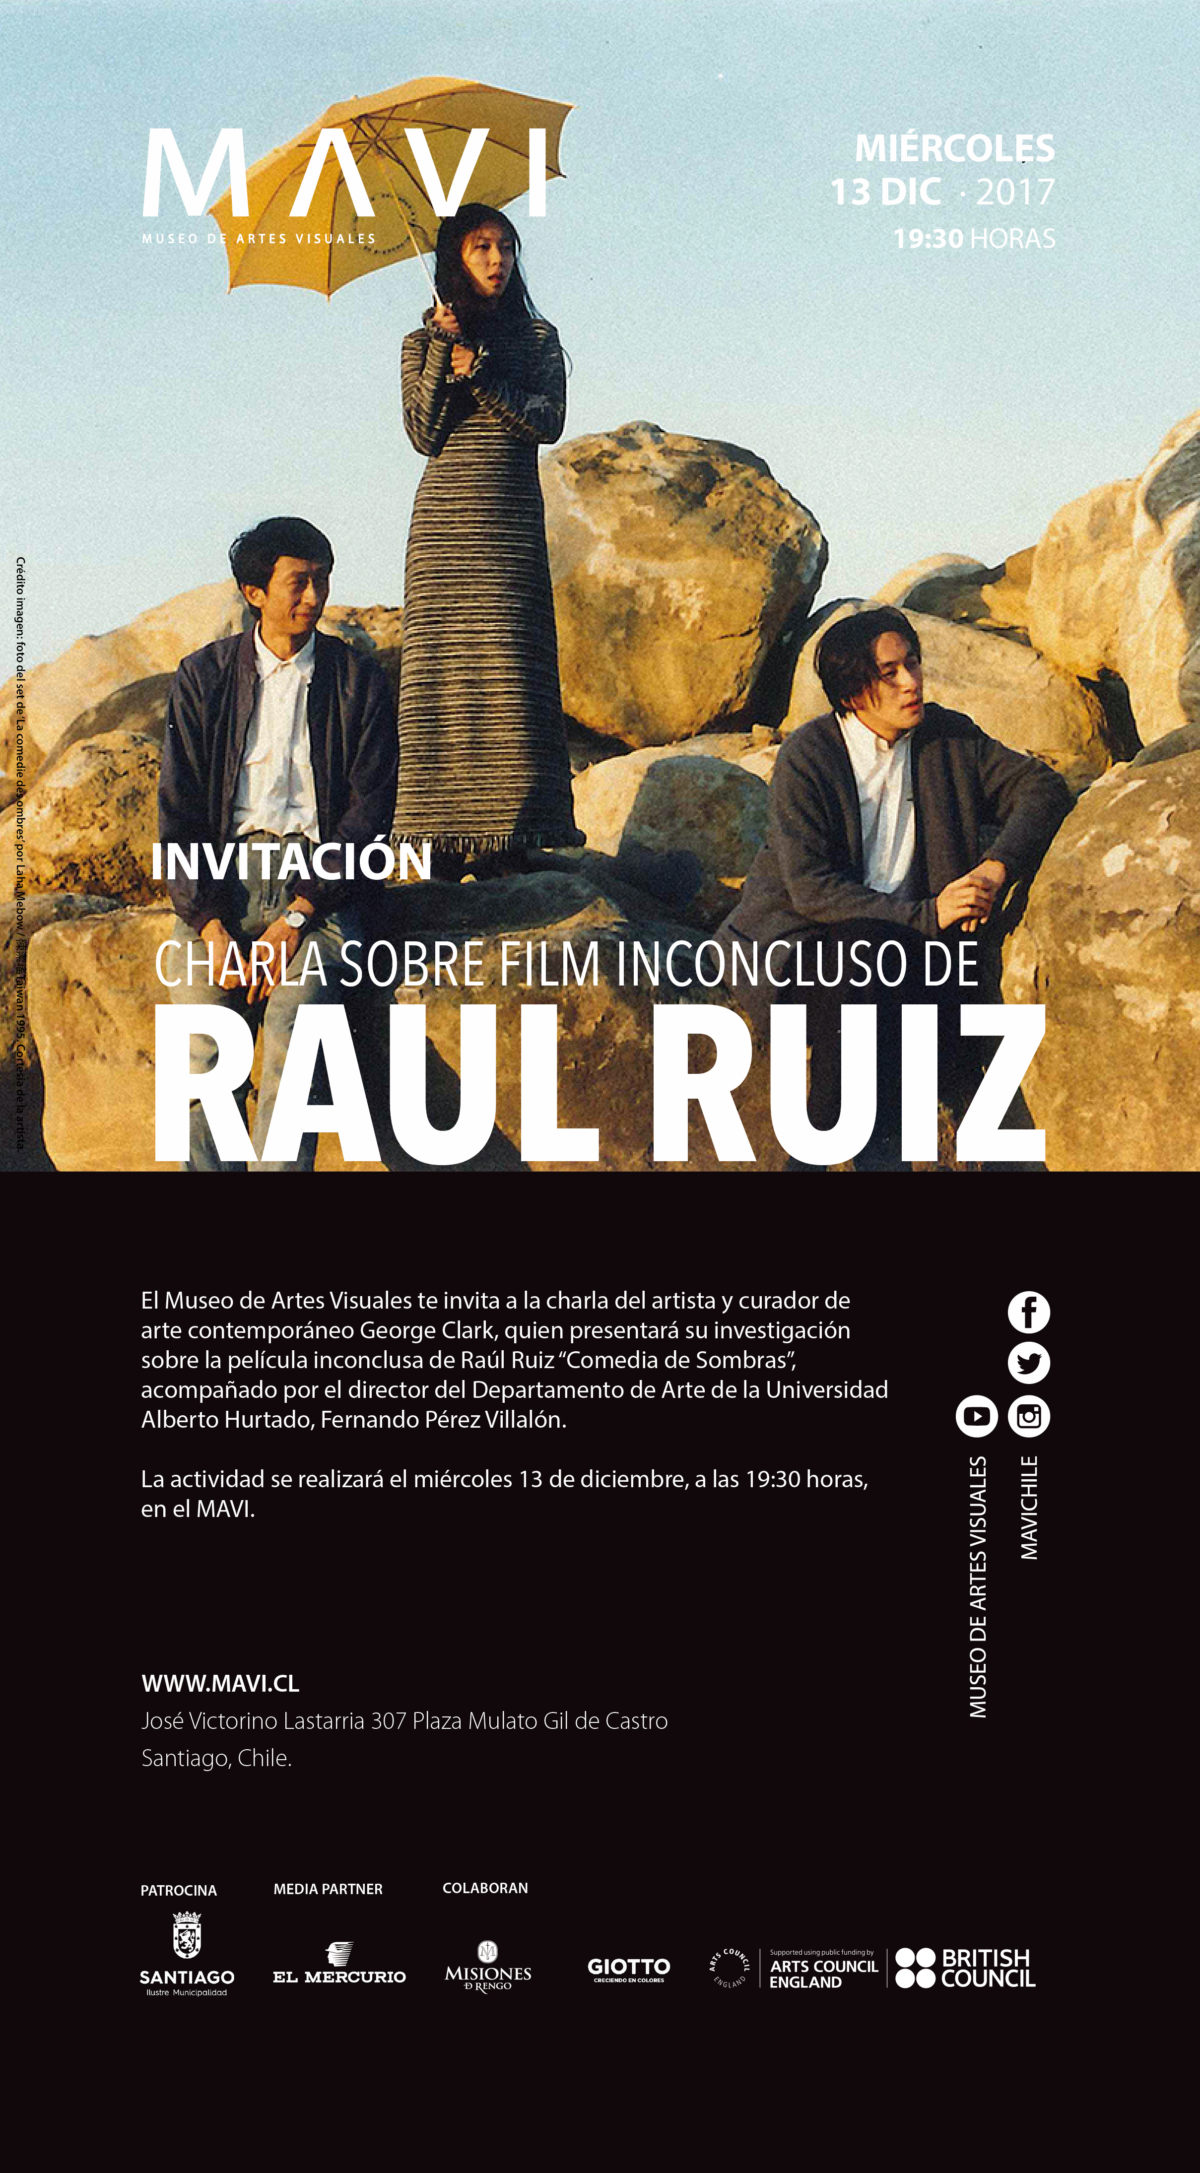 An investigation into the unfinished film by Raul Ruiz, MAVI, Santiago 13 Dec 2017